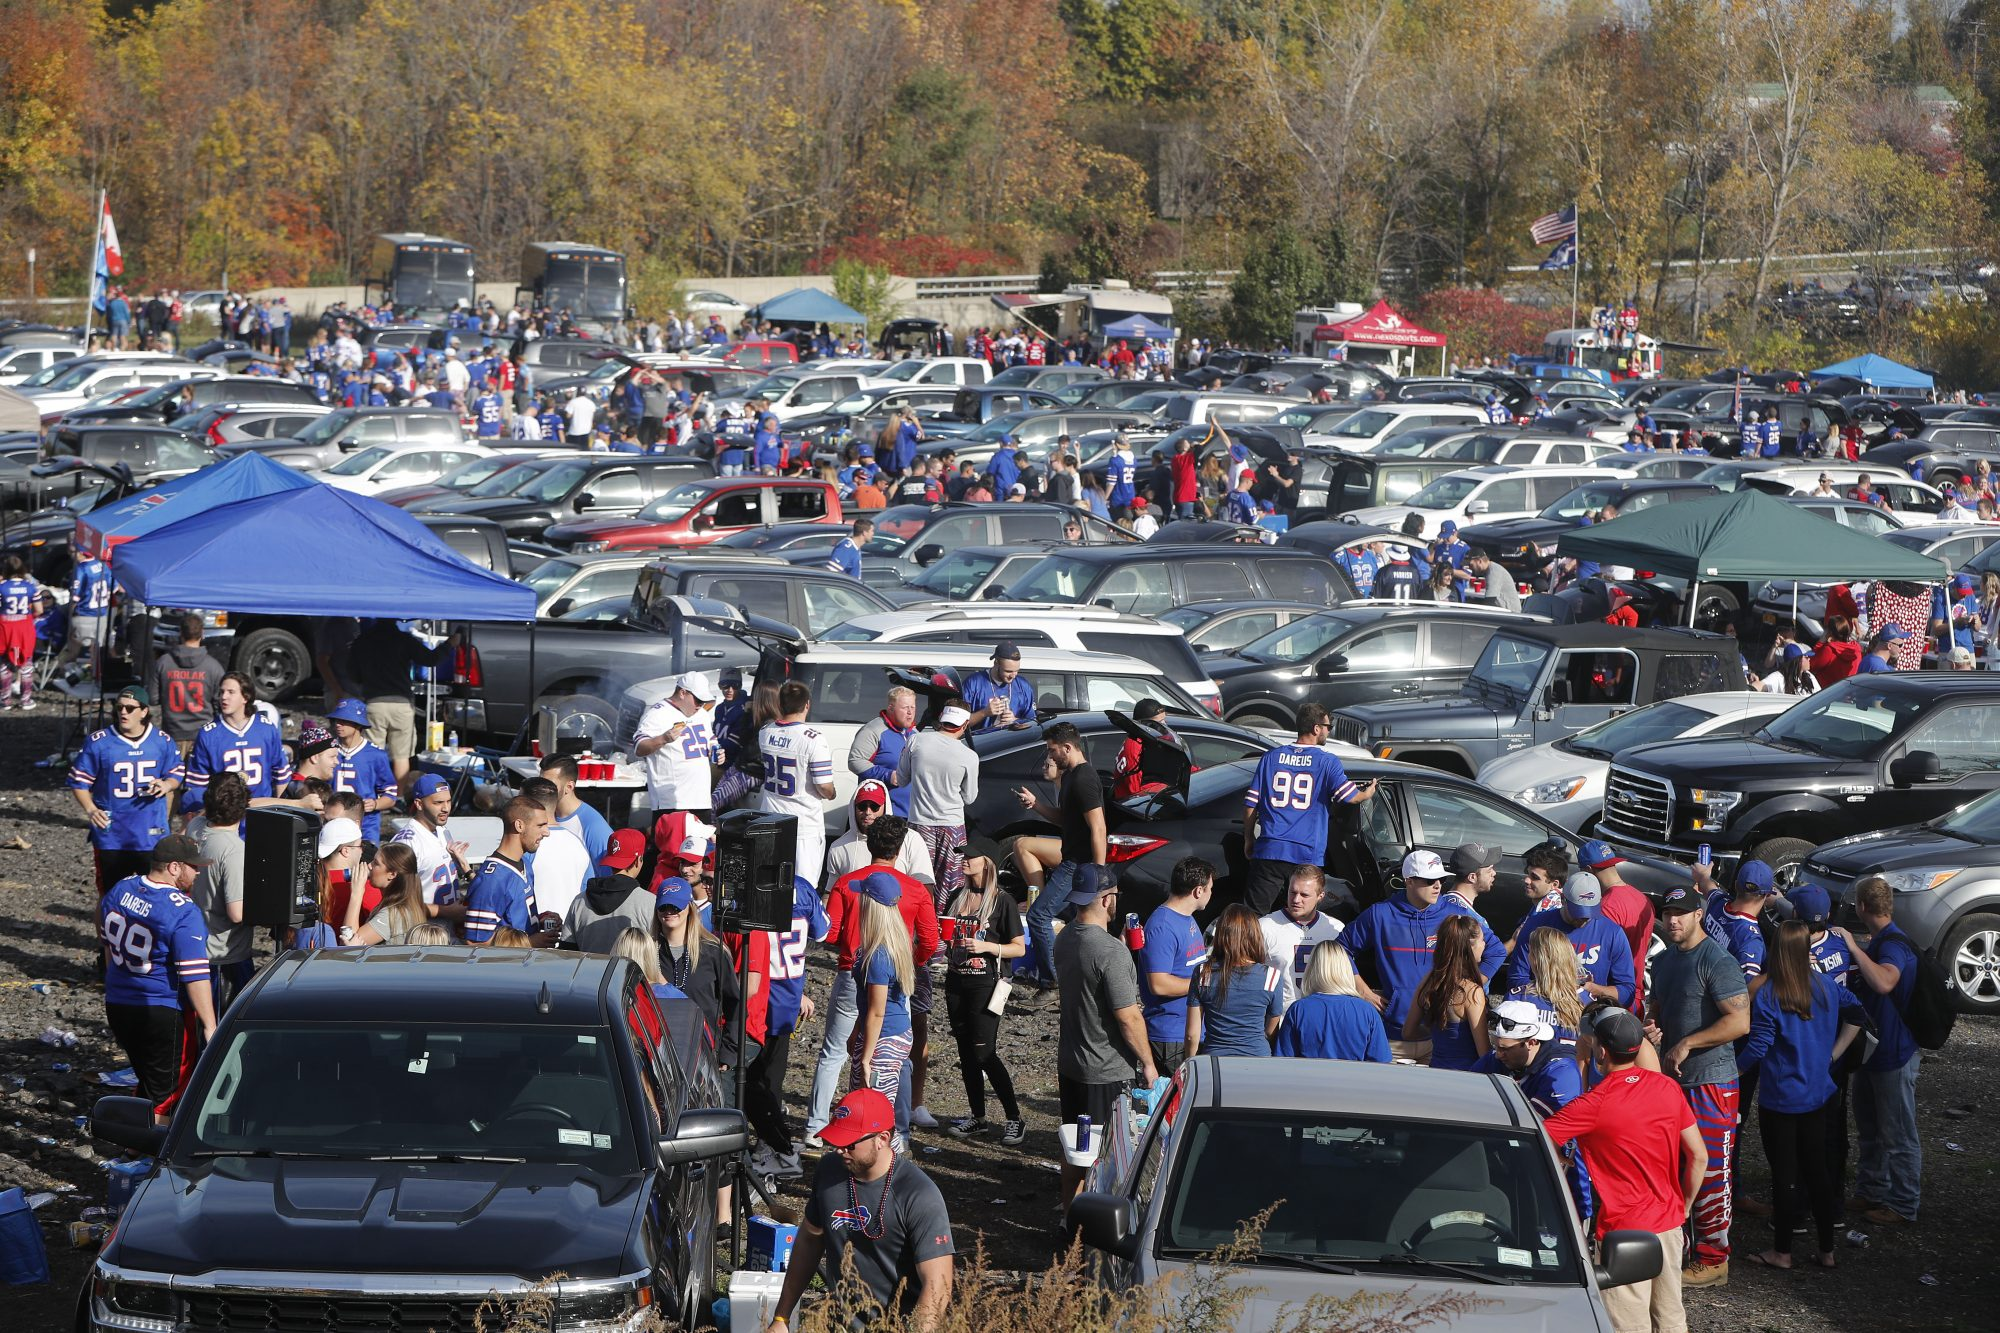 Bills fans traveling by bus to the games at New Era Field who want to tailgate will now be required to do so in a designated area. (Mark Mulville/News file photo)